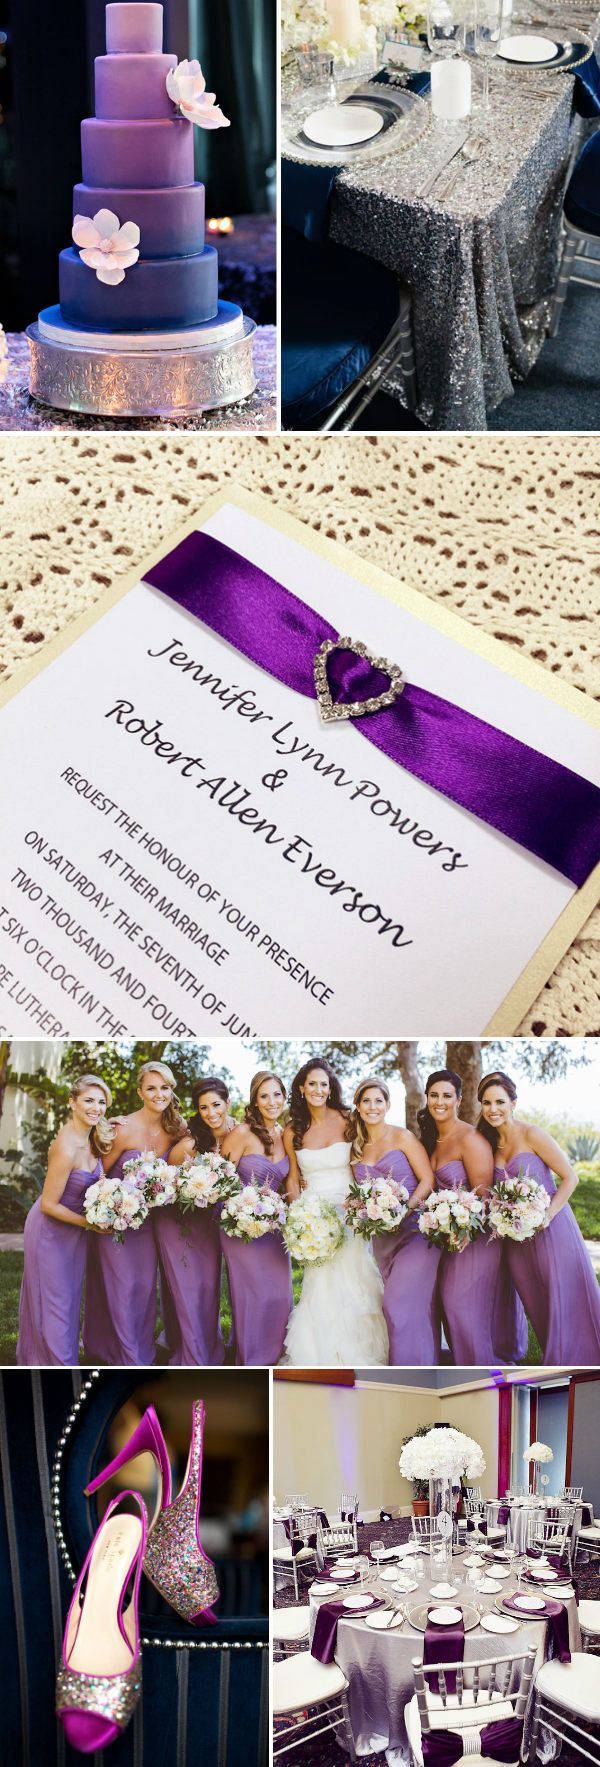 invitation letter for us vissample wedding%0A purple and glitter silver wedding ideas and wedding invitations